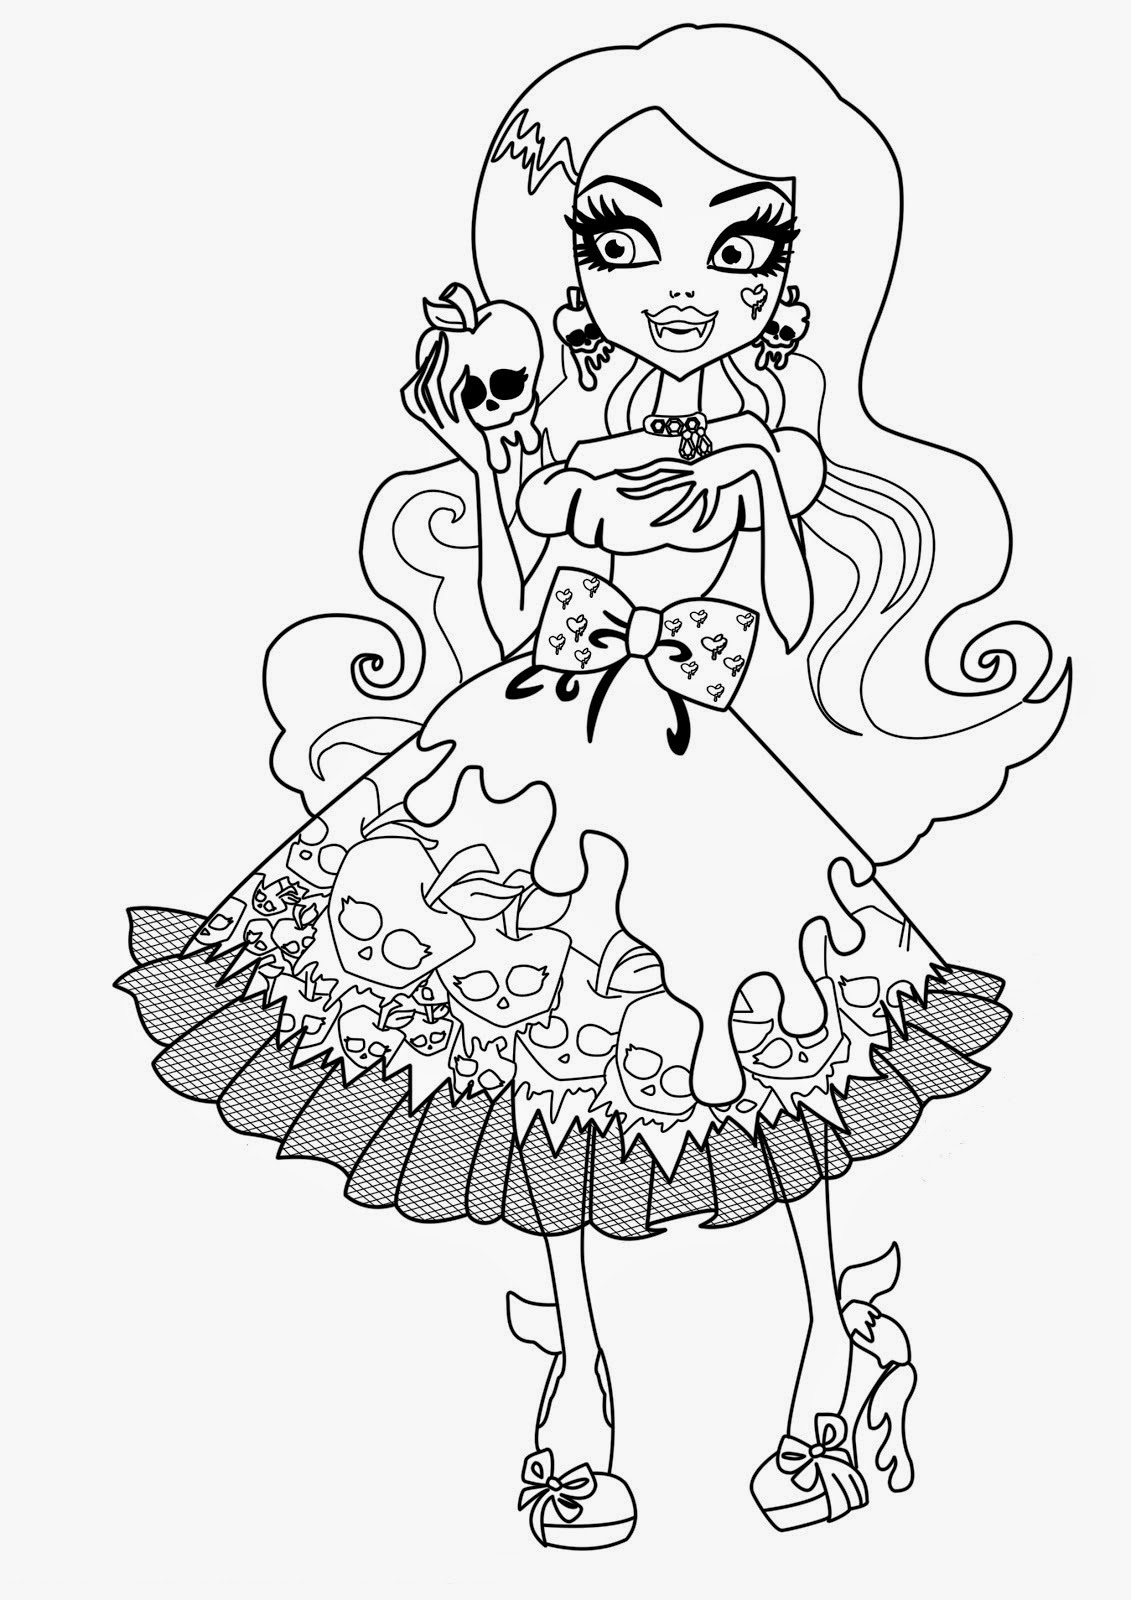 coloring book monster high coloring pages monster high coloring pages free and printable book monster coloring high